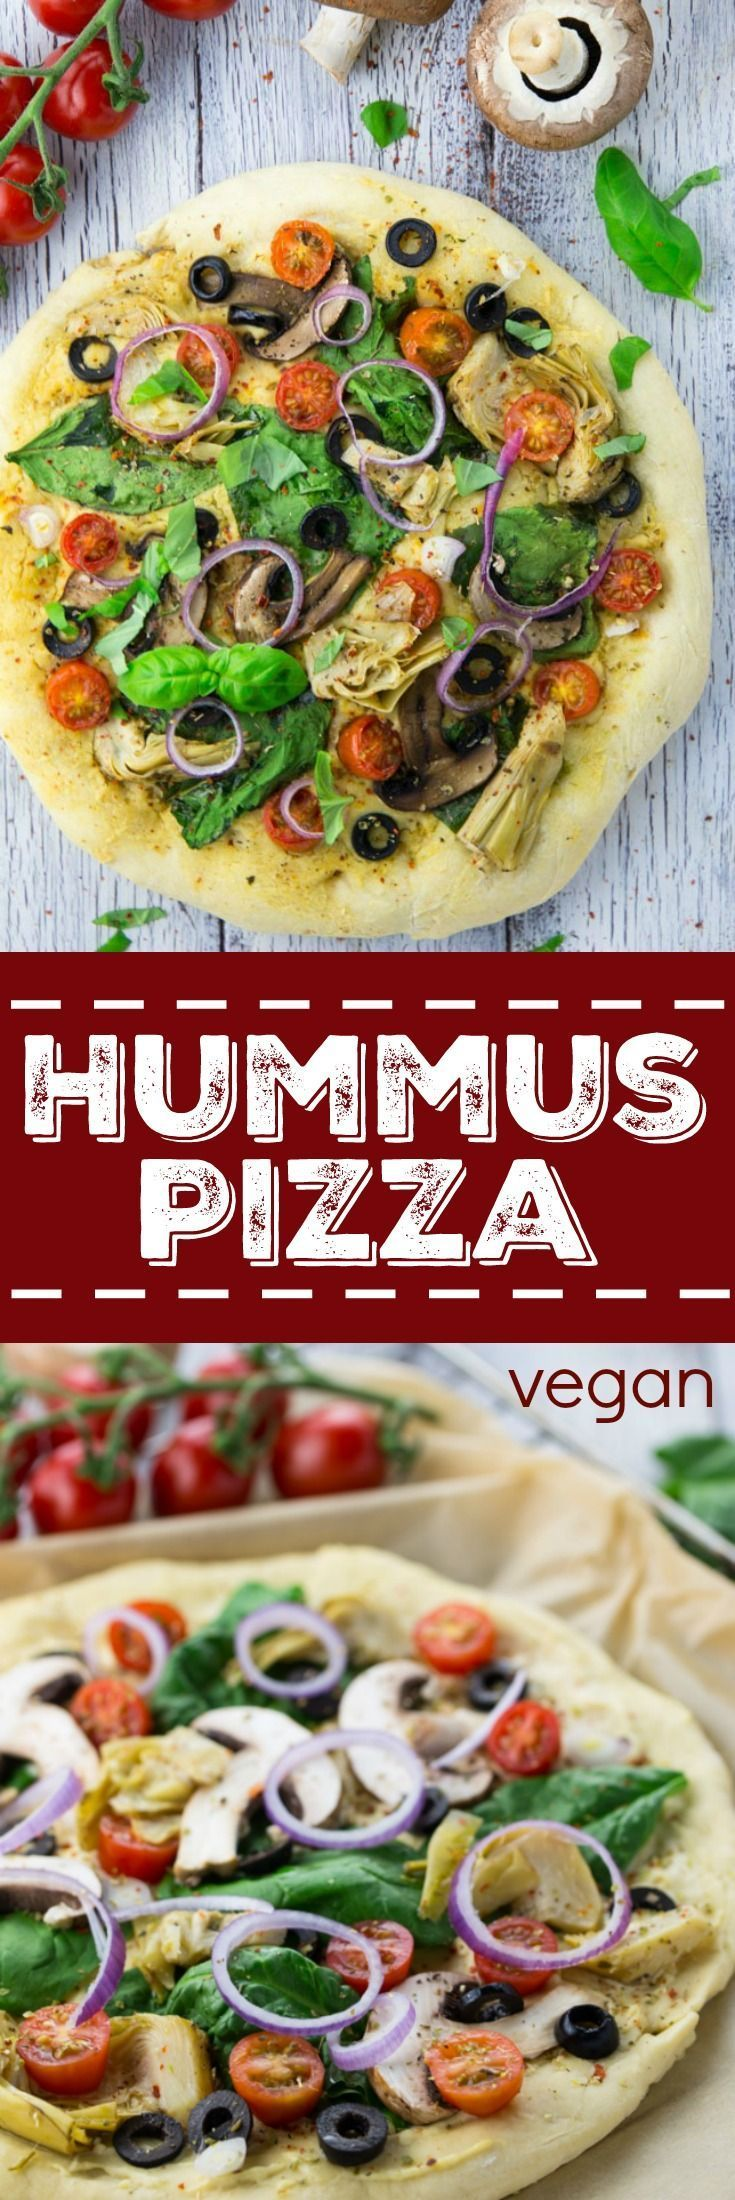 I love hummus and I love pizza. So I thought why not just try hummus pizza?! This veggie pizza with spinach, olives, and artichokes is one of my favorites!